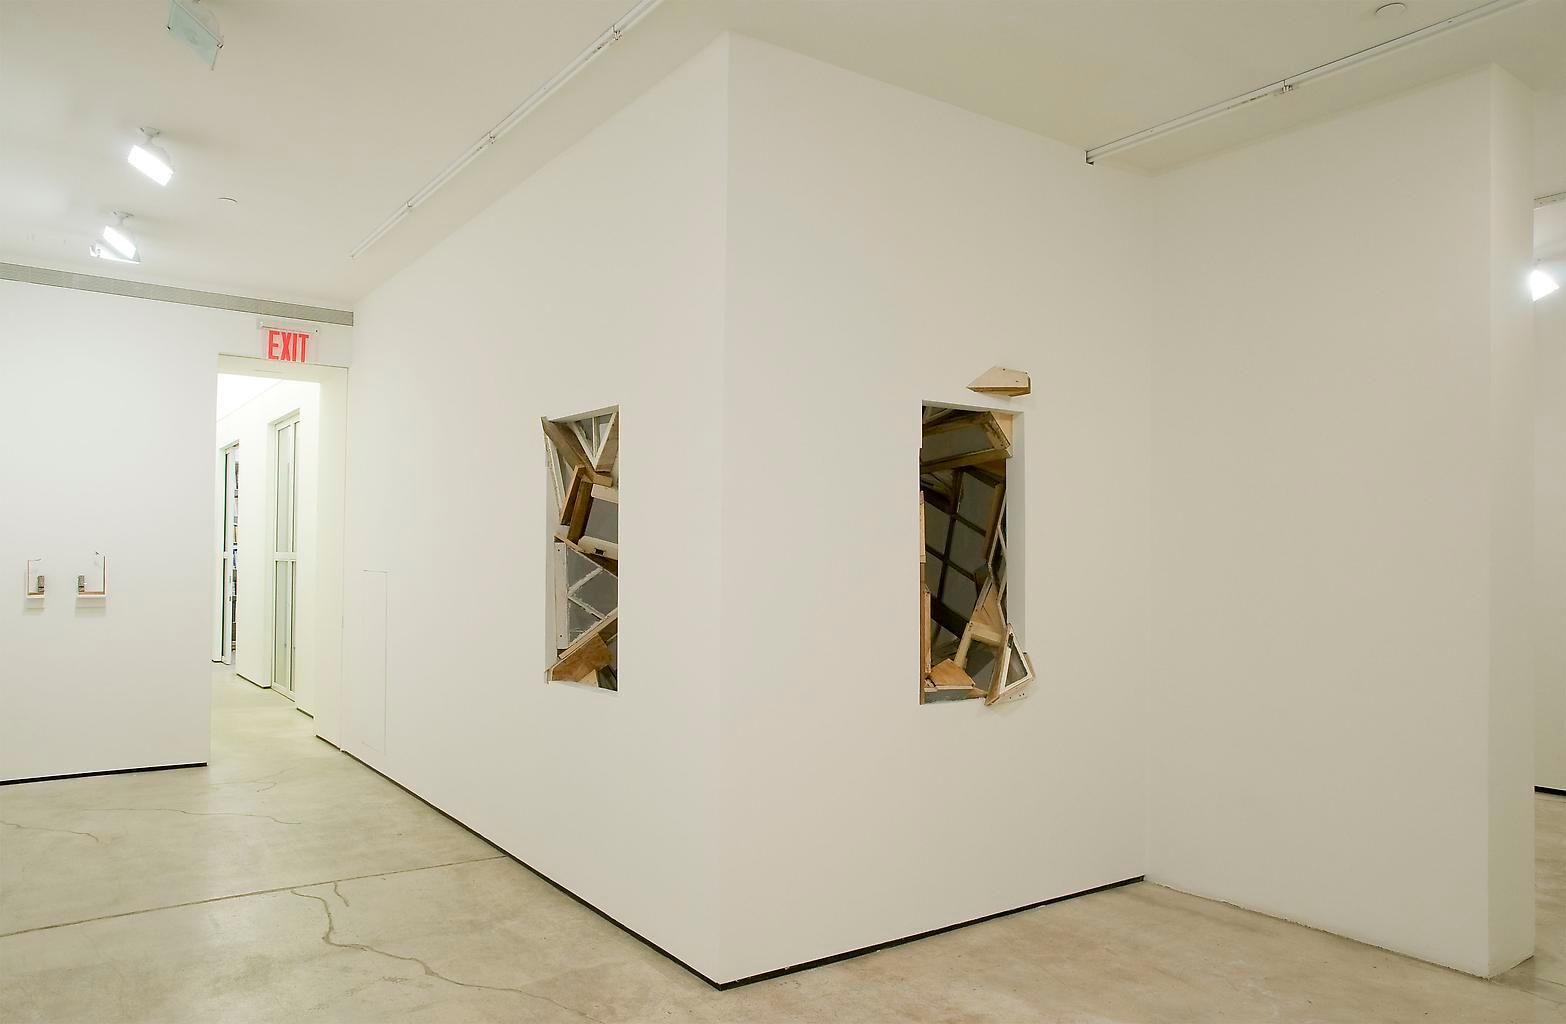 Installation view, Meredith James, Espalier, Marc Jancou, New York, April 17 - May 22, 2010